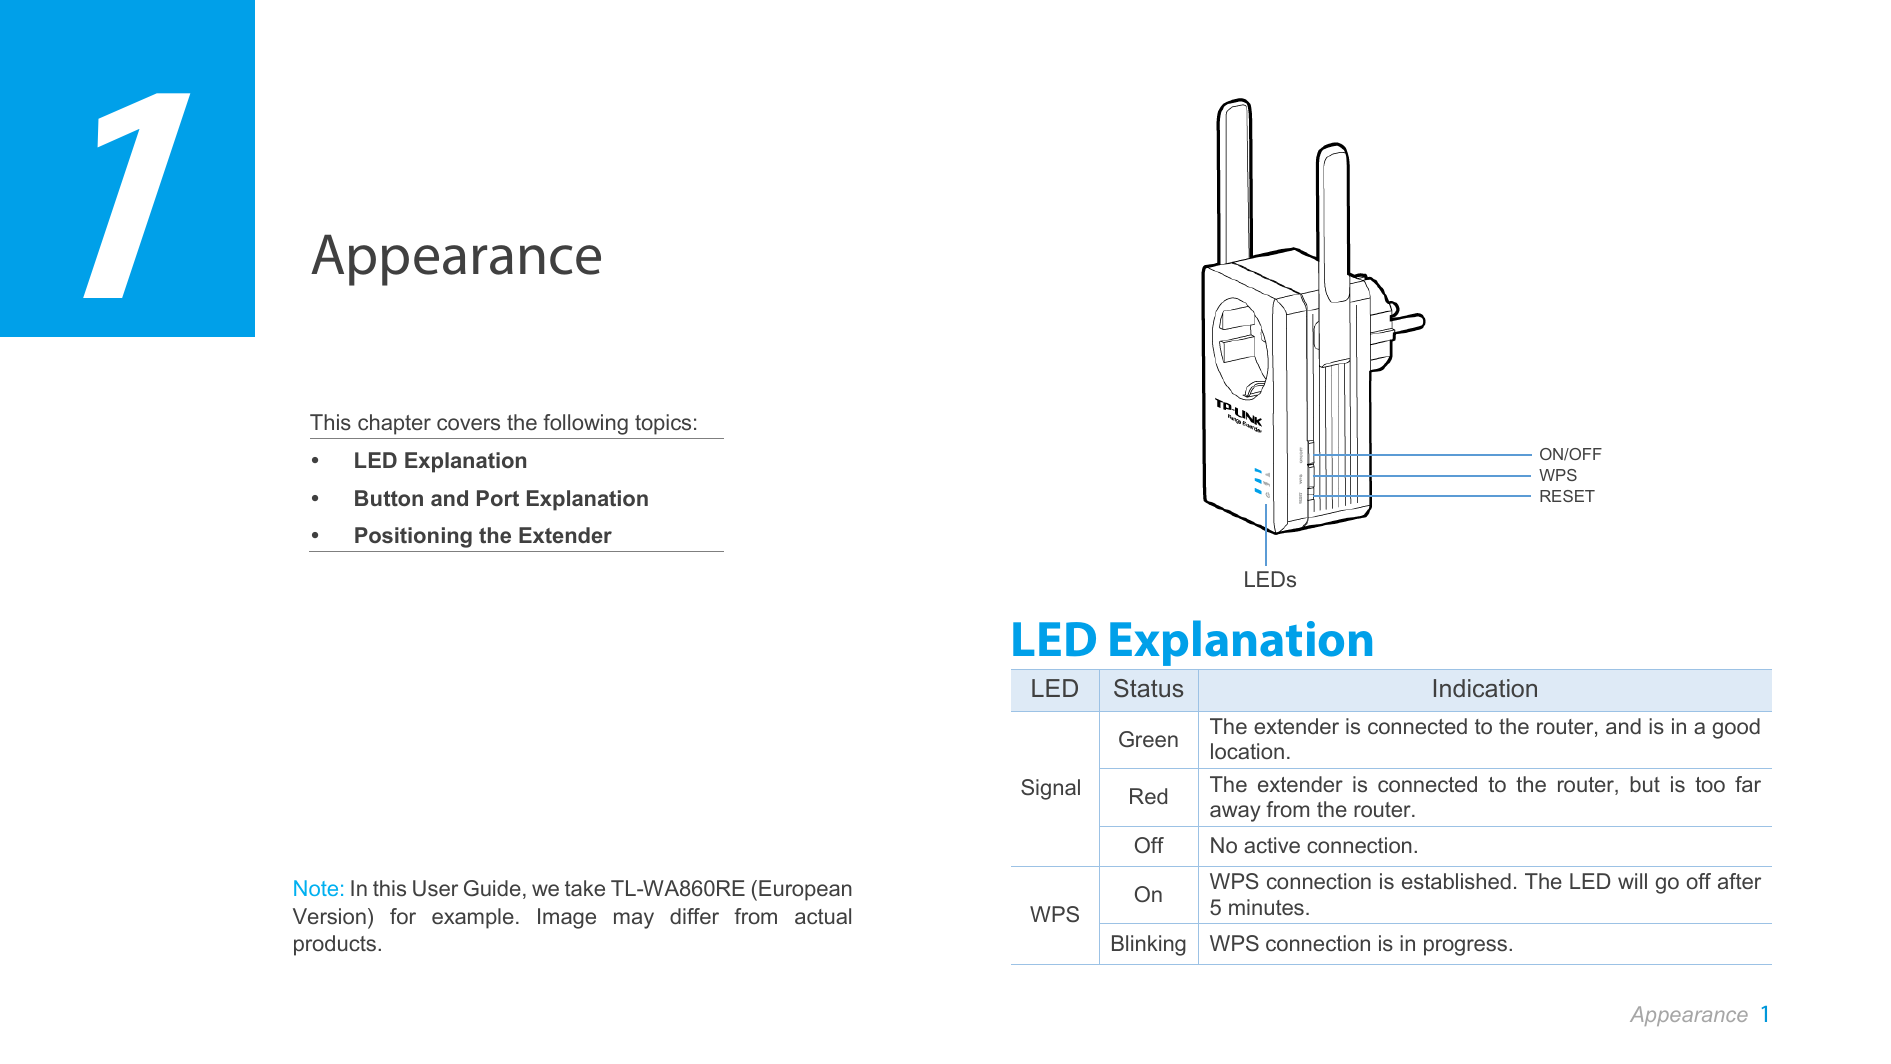 Tp Link Technologies Wa860rev2 300mbps Wi Fi Range Extender With Tl Wa860re Wifi Ac Passthrough Appearance 1 This Chapter Covers The Following Topics Led Explanation Button And